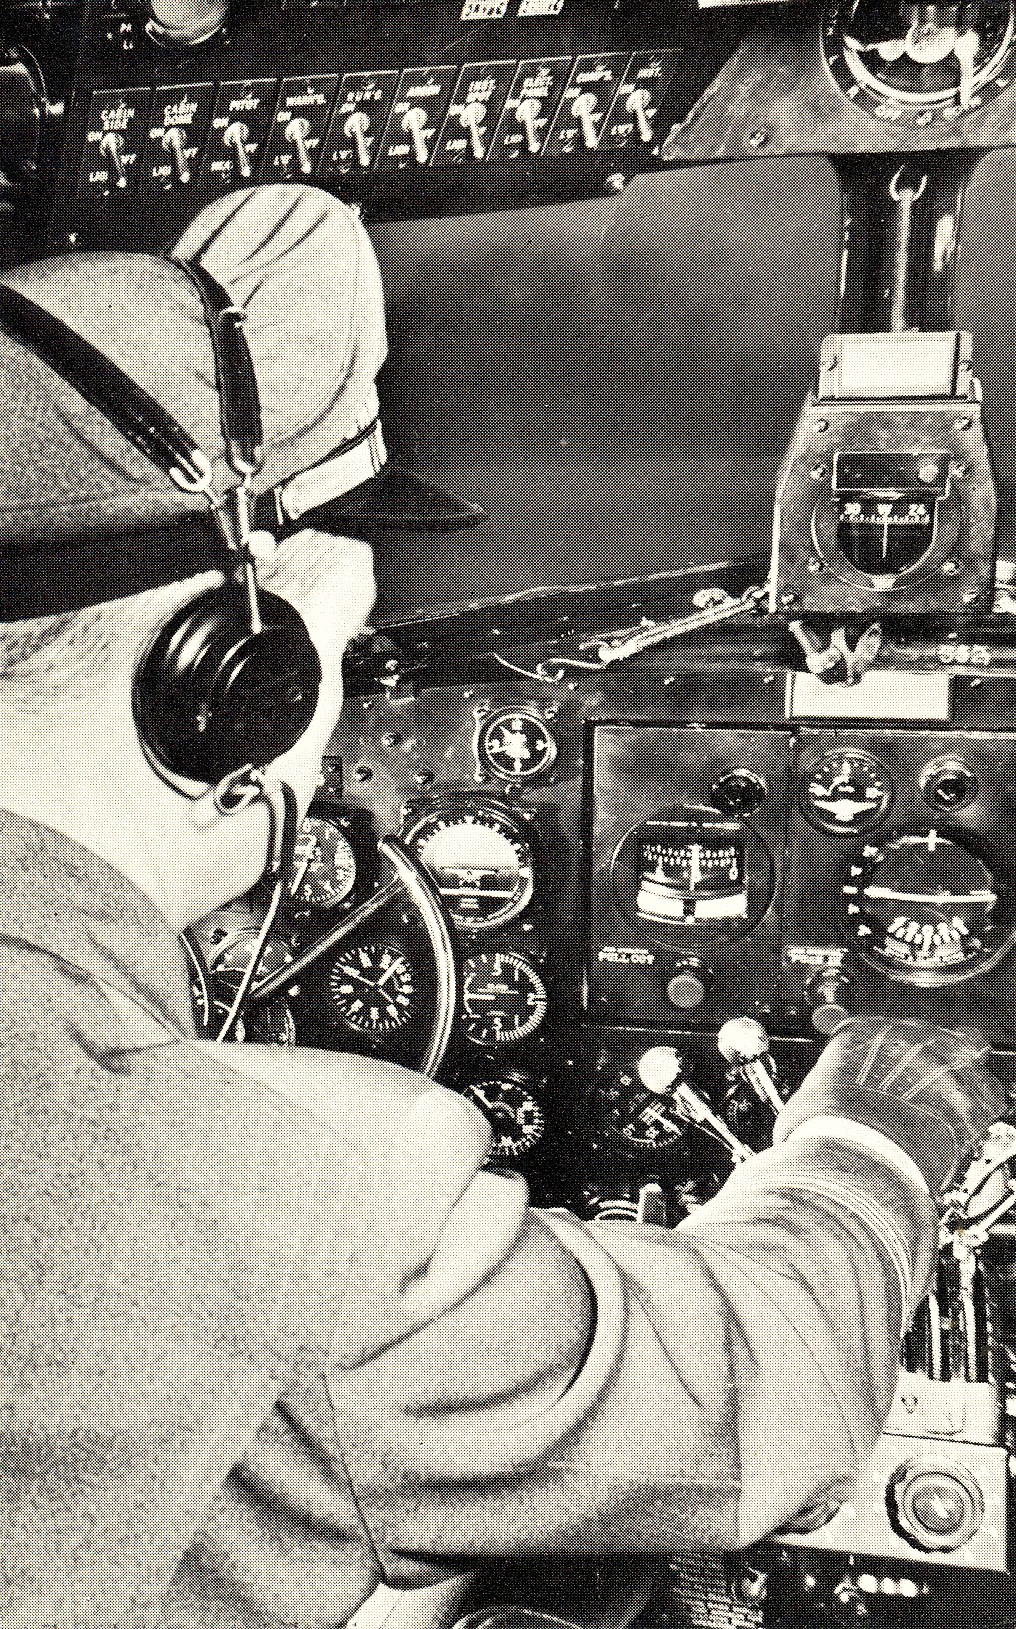 On early TWA flights the Captain normally made adjustments to the engine and propeller controls. Almost all landings and takeoffs were performed by the Captain.